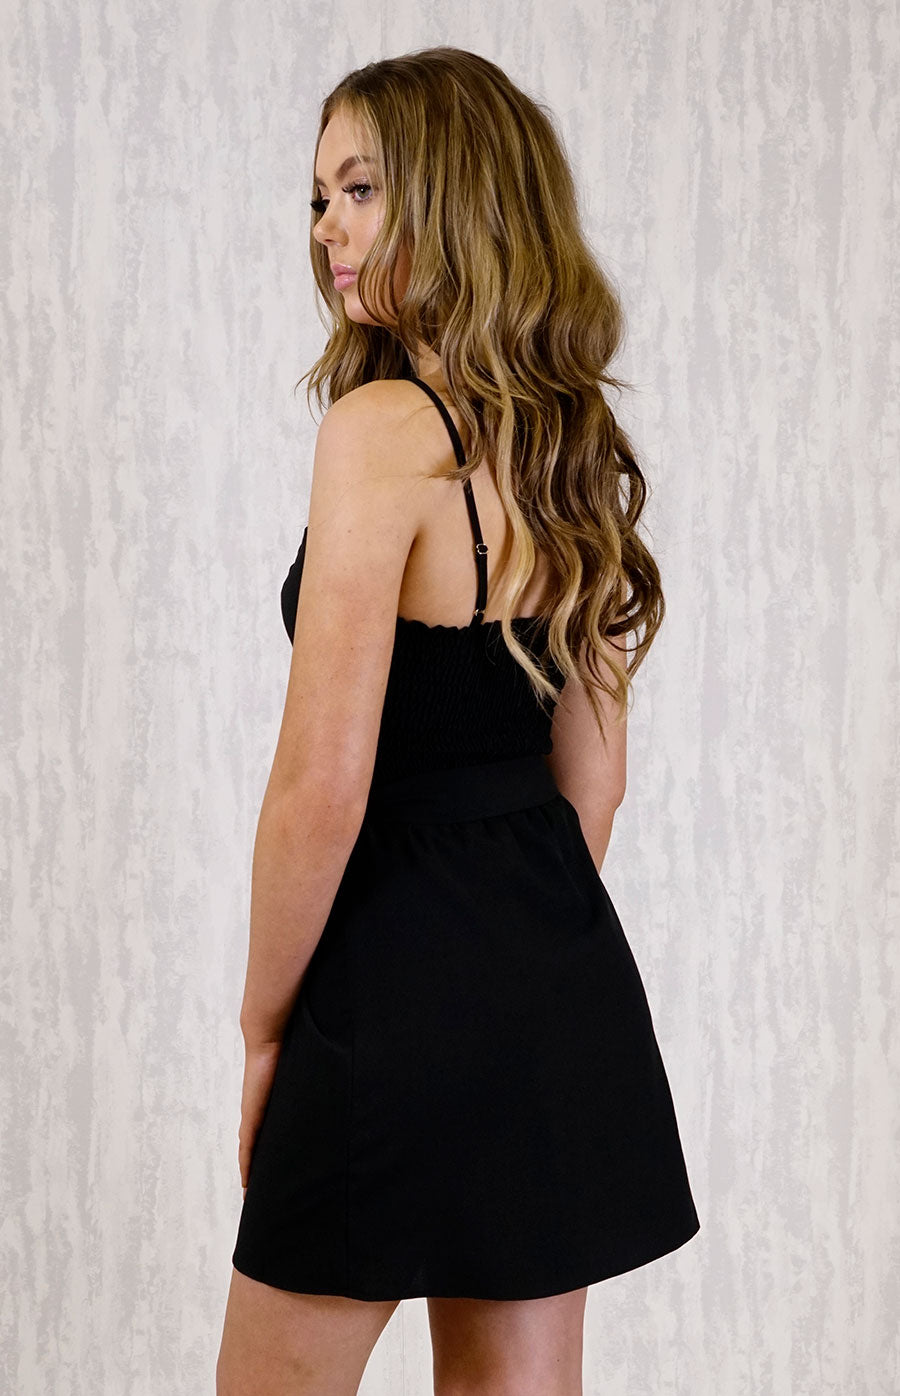 SARAH PEAKABOO BLACK DRESS - Saphyra Boutique